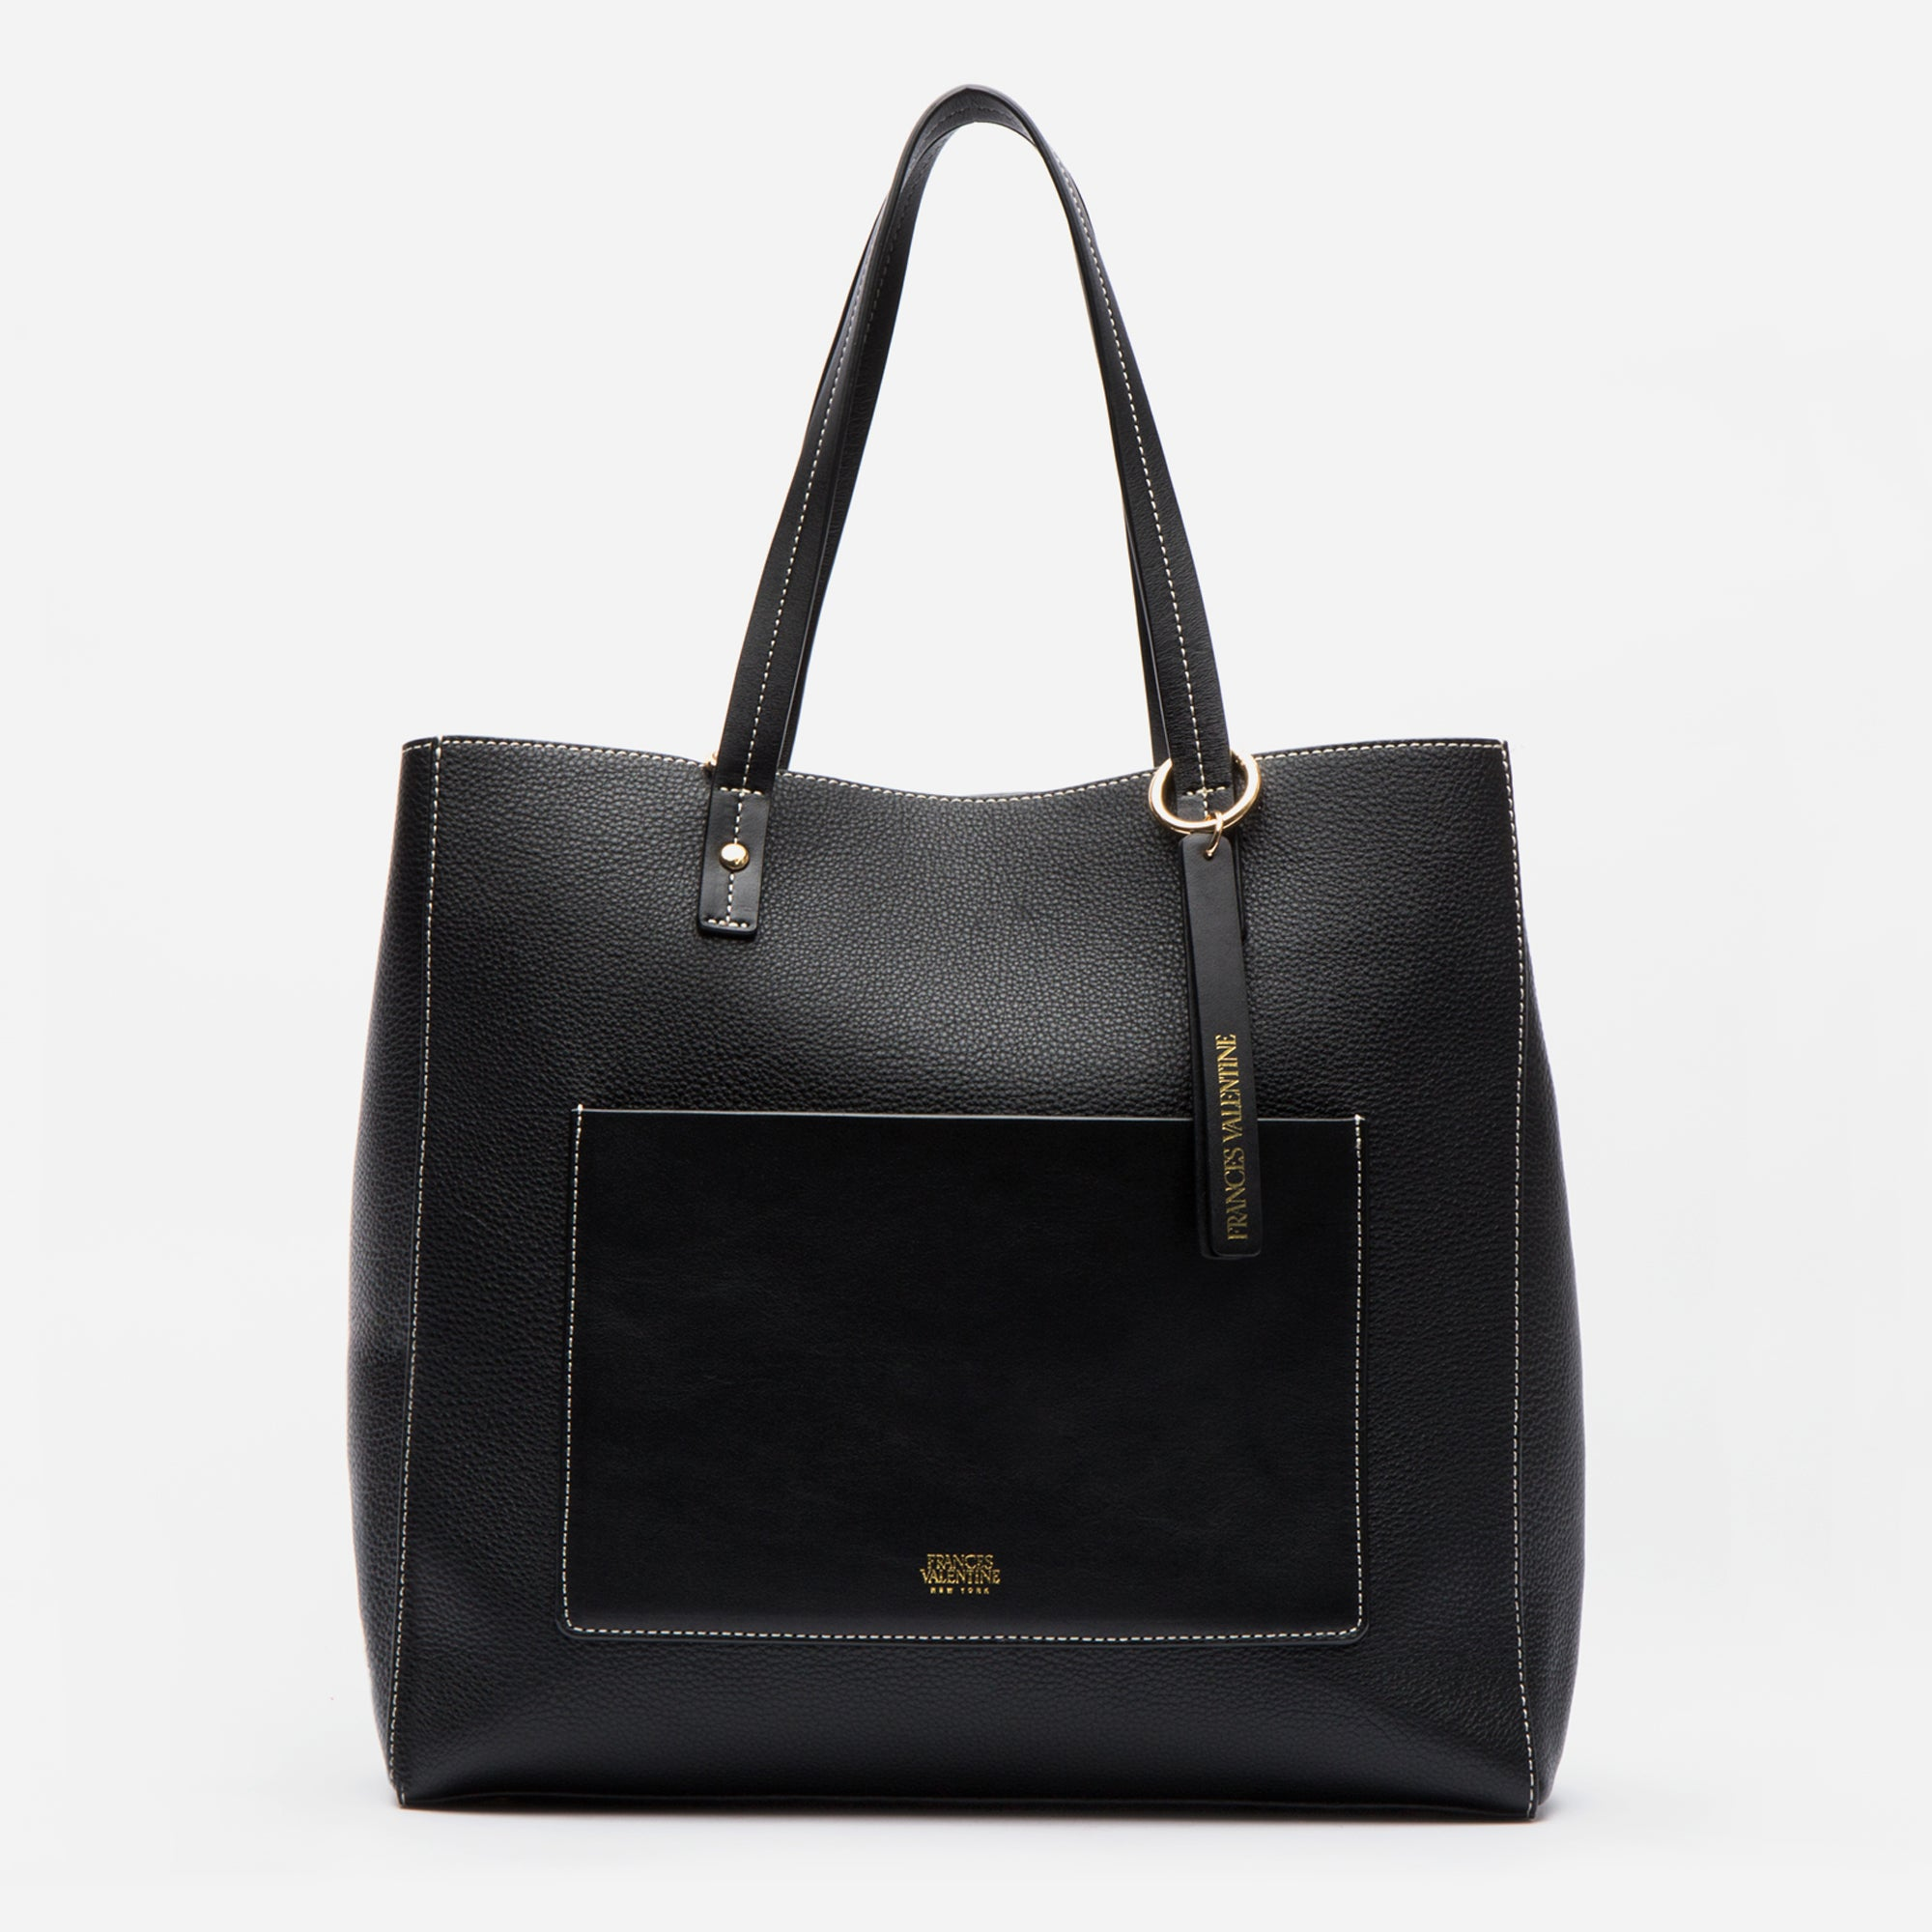 Tall Chloe Tote in tumbled leather. Carry a laptop & everyday essentials. Shop Frances Valentine